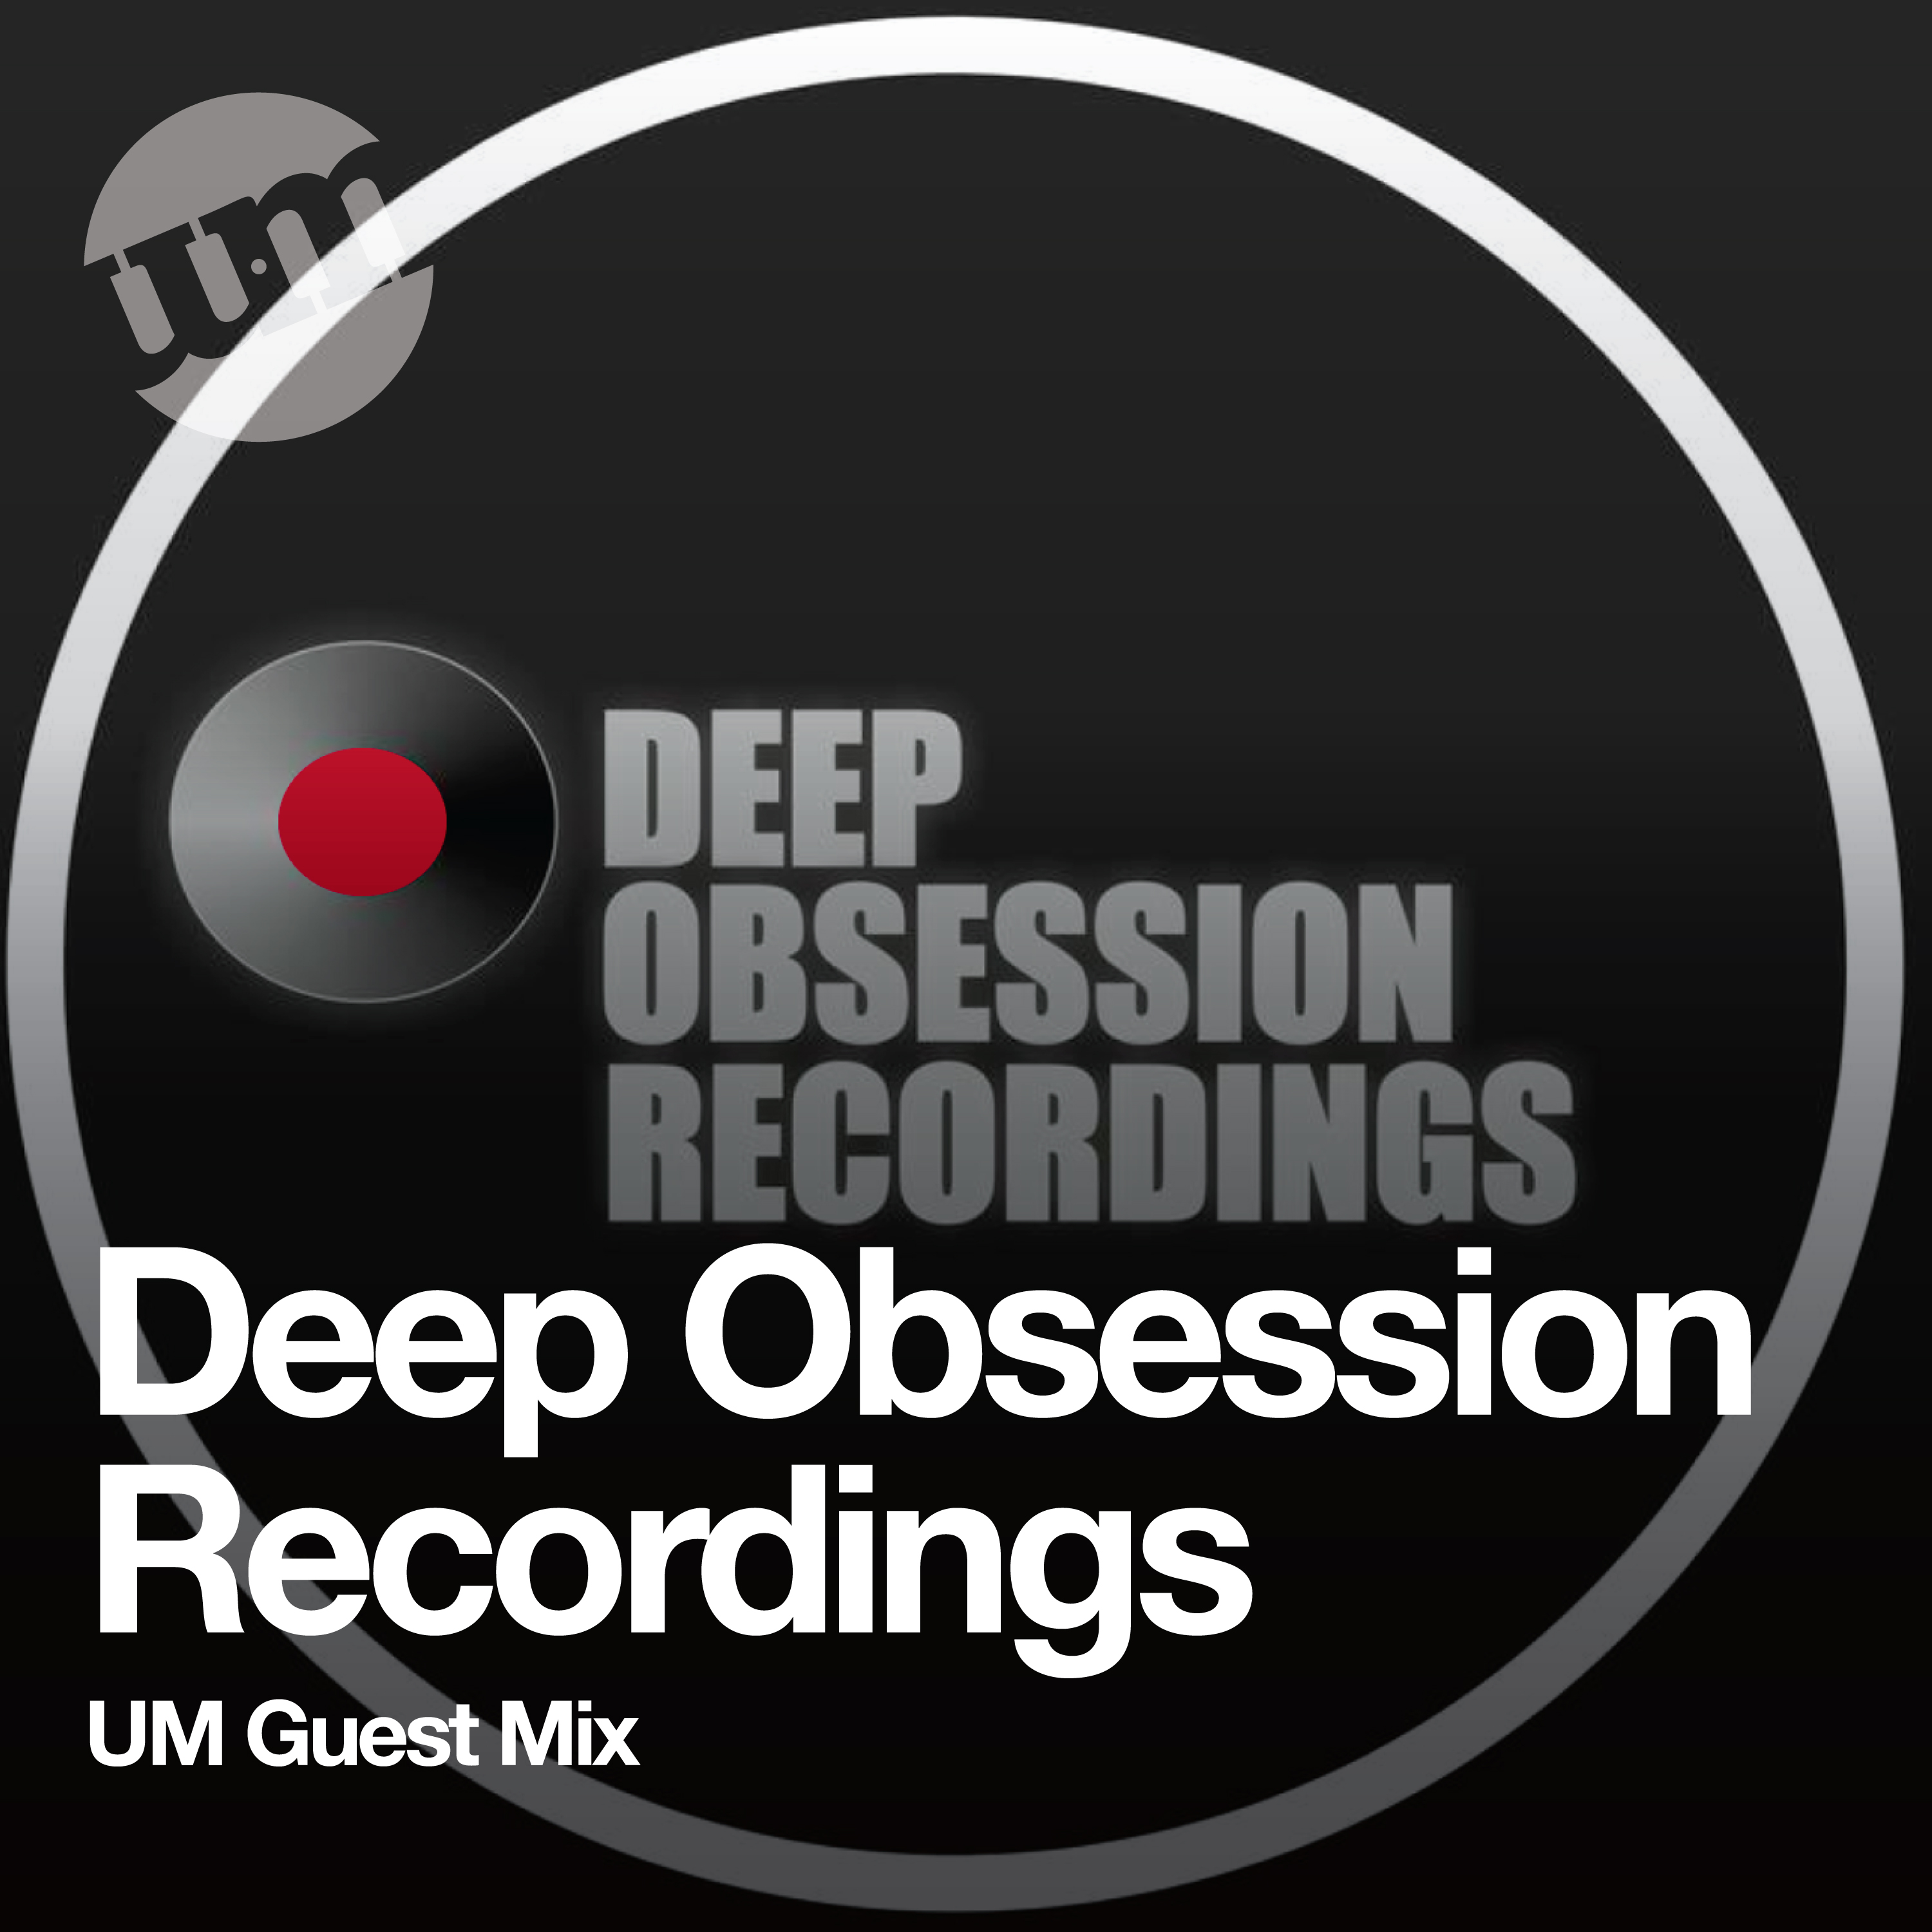 Deep Obsession Recordings - UM Guest Mix (30.07.20)